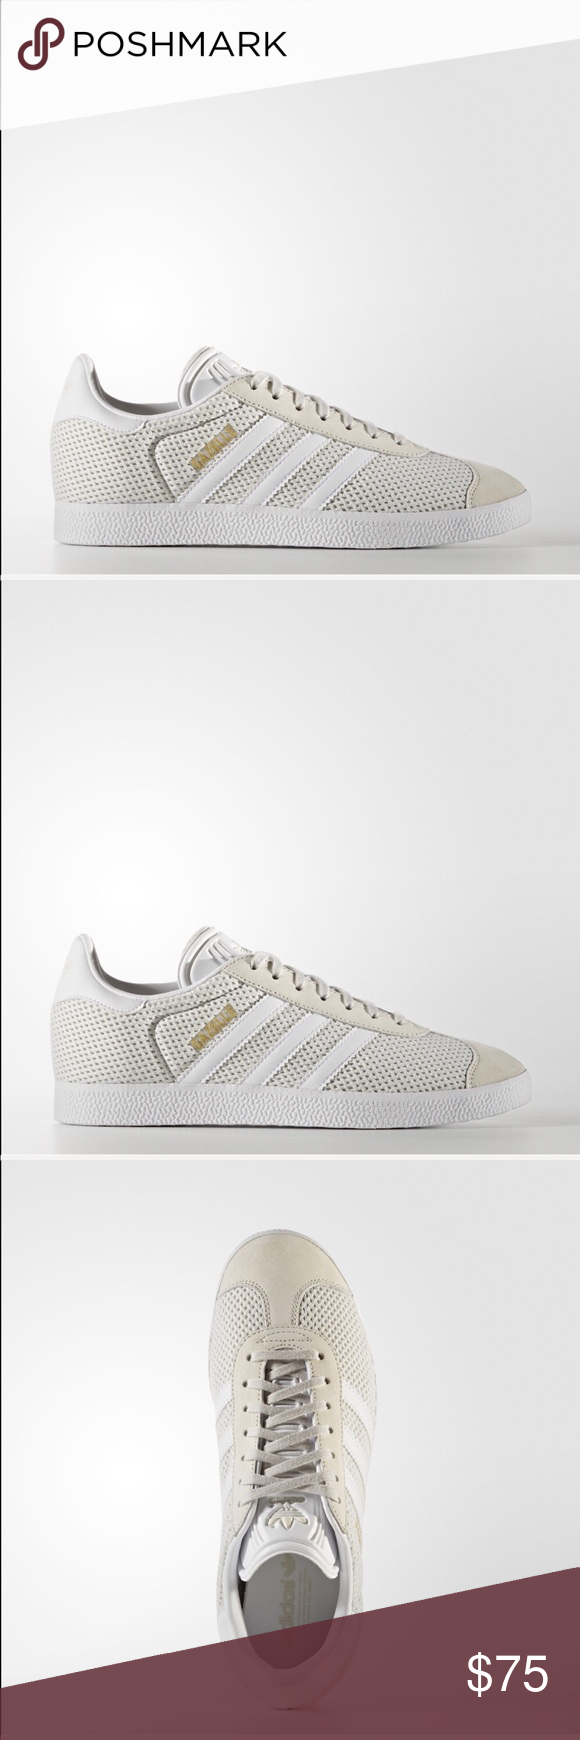 Adidas Talccloud Gazelle Cut Whitetalc 9 5 Low Women's New stdrQxohCB